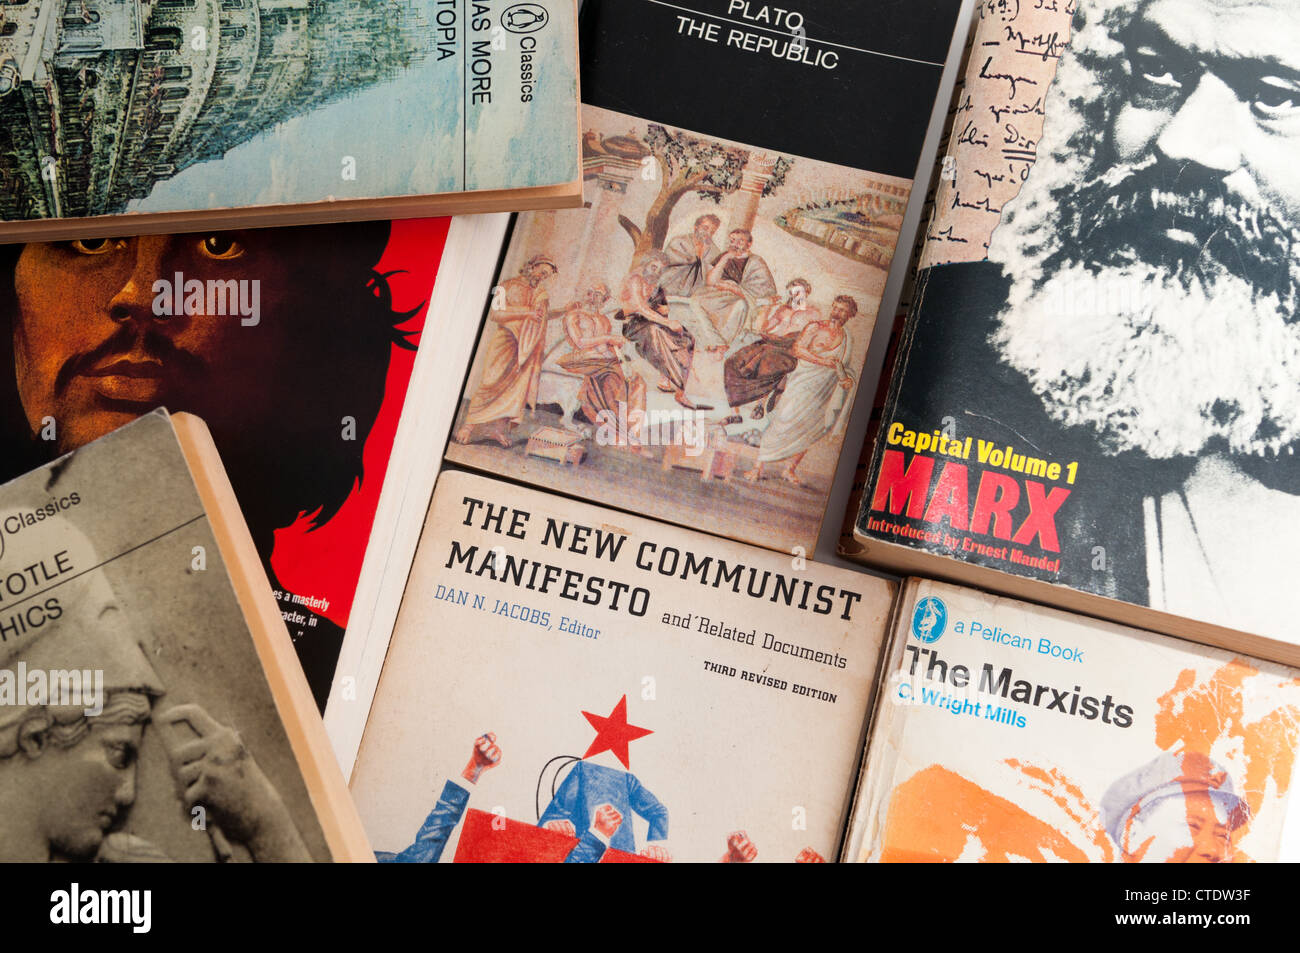 Pile of political and philosophical books - Stock Image